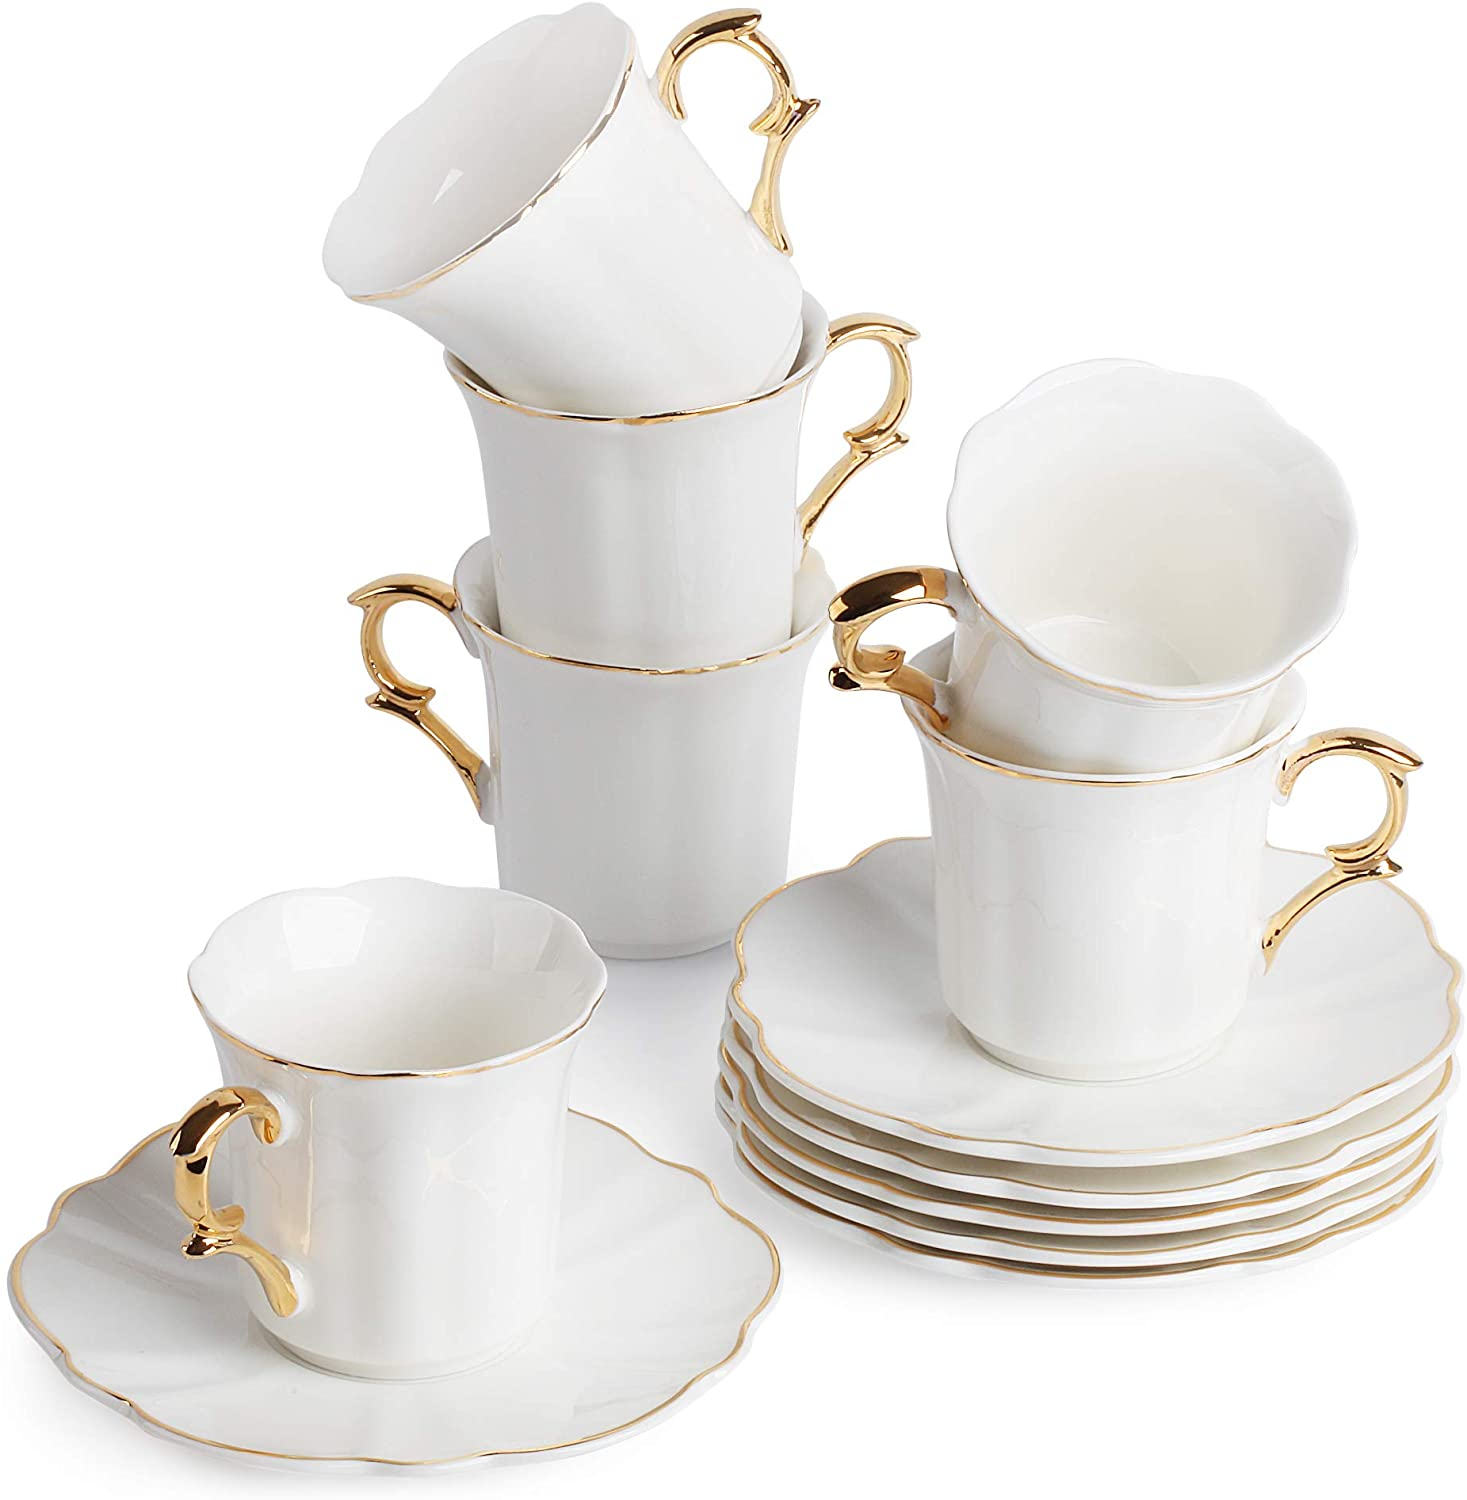 BTäT- Small Espresso Cups and Saucers, Set of 6 Demitasse Cups (2.4 oz) with Gold Trim and Gift Box, Small Coffee Cup, White Espresso Cup Set, Turkish Coffee Cup, Porcelain Espresso Cup, Espresso Set